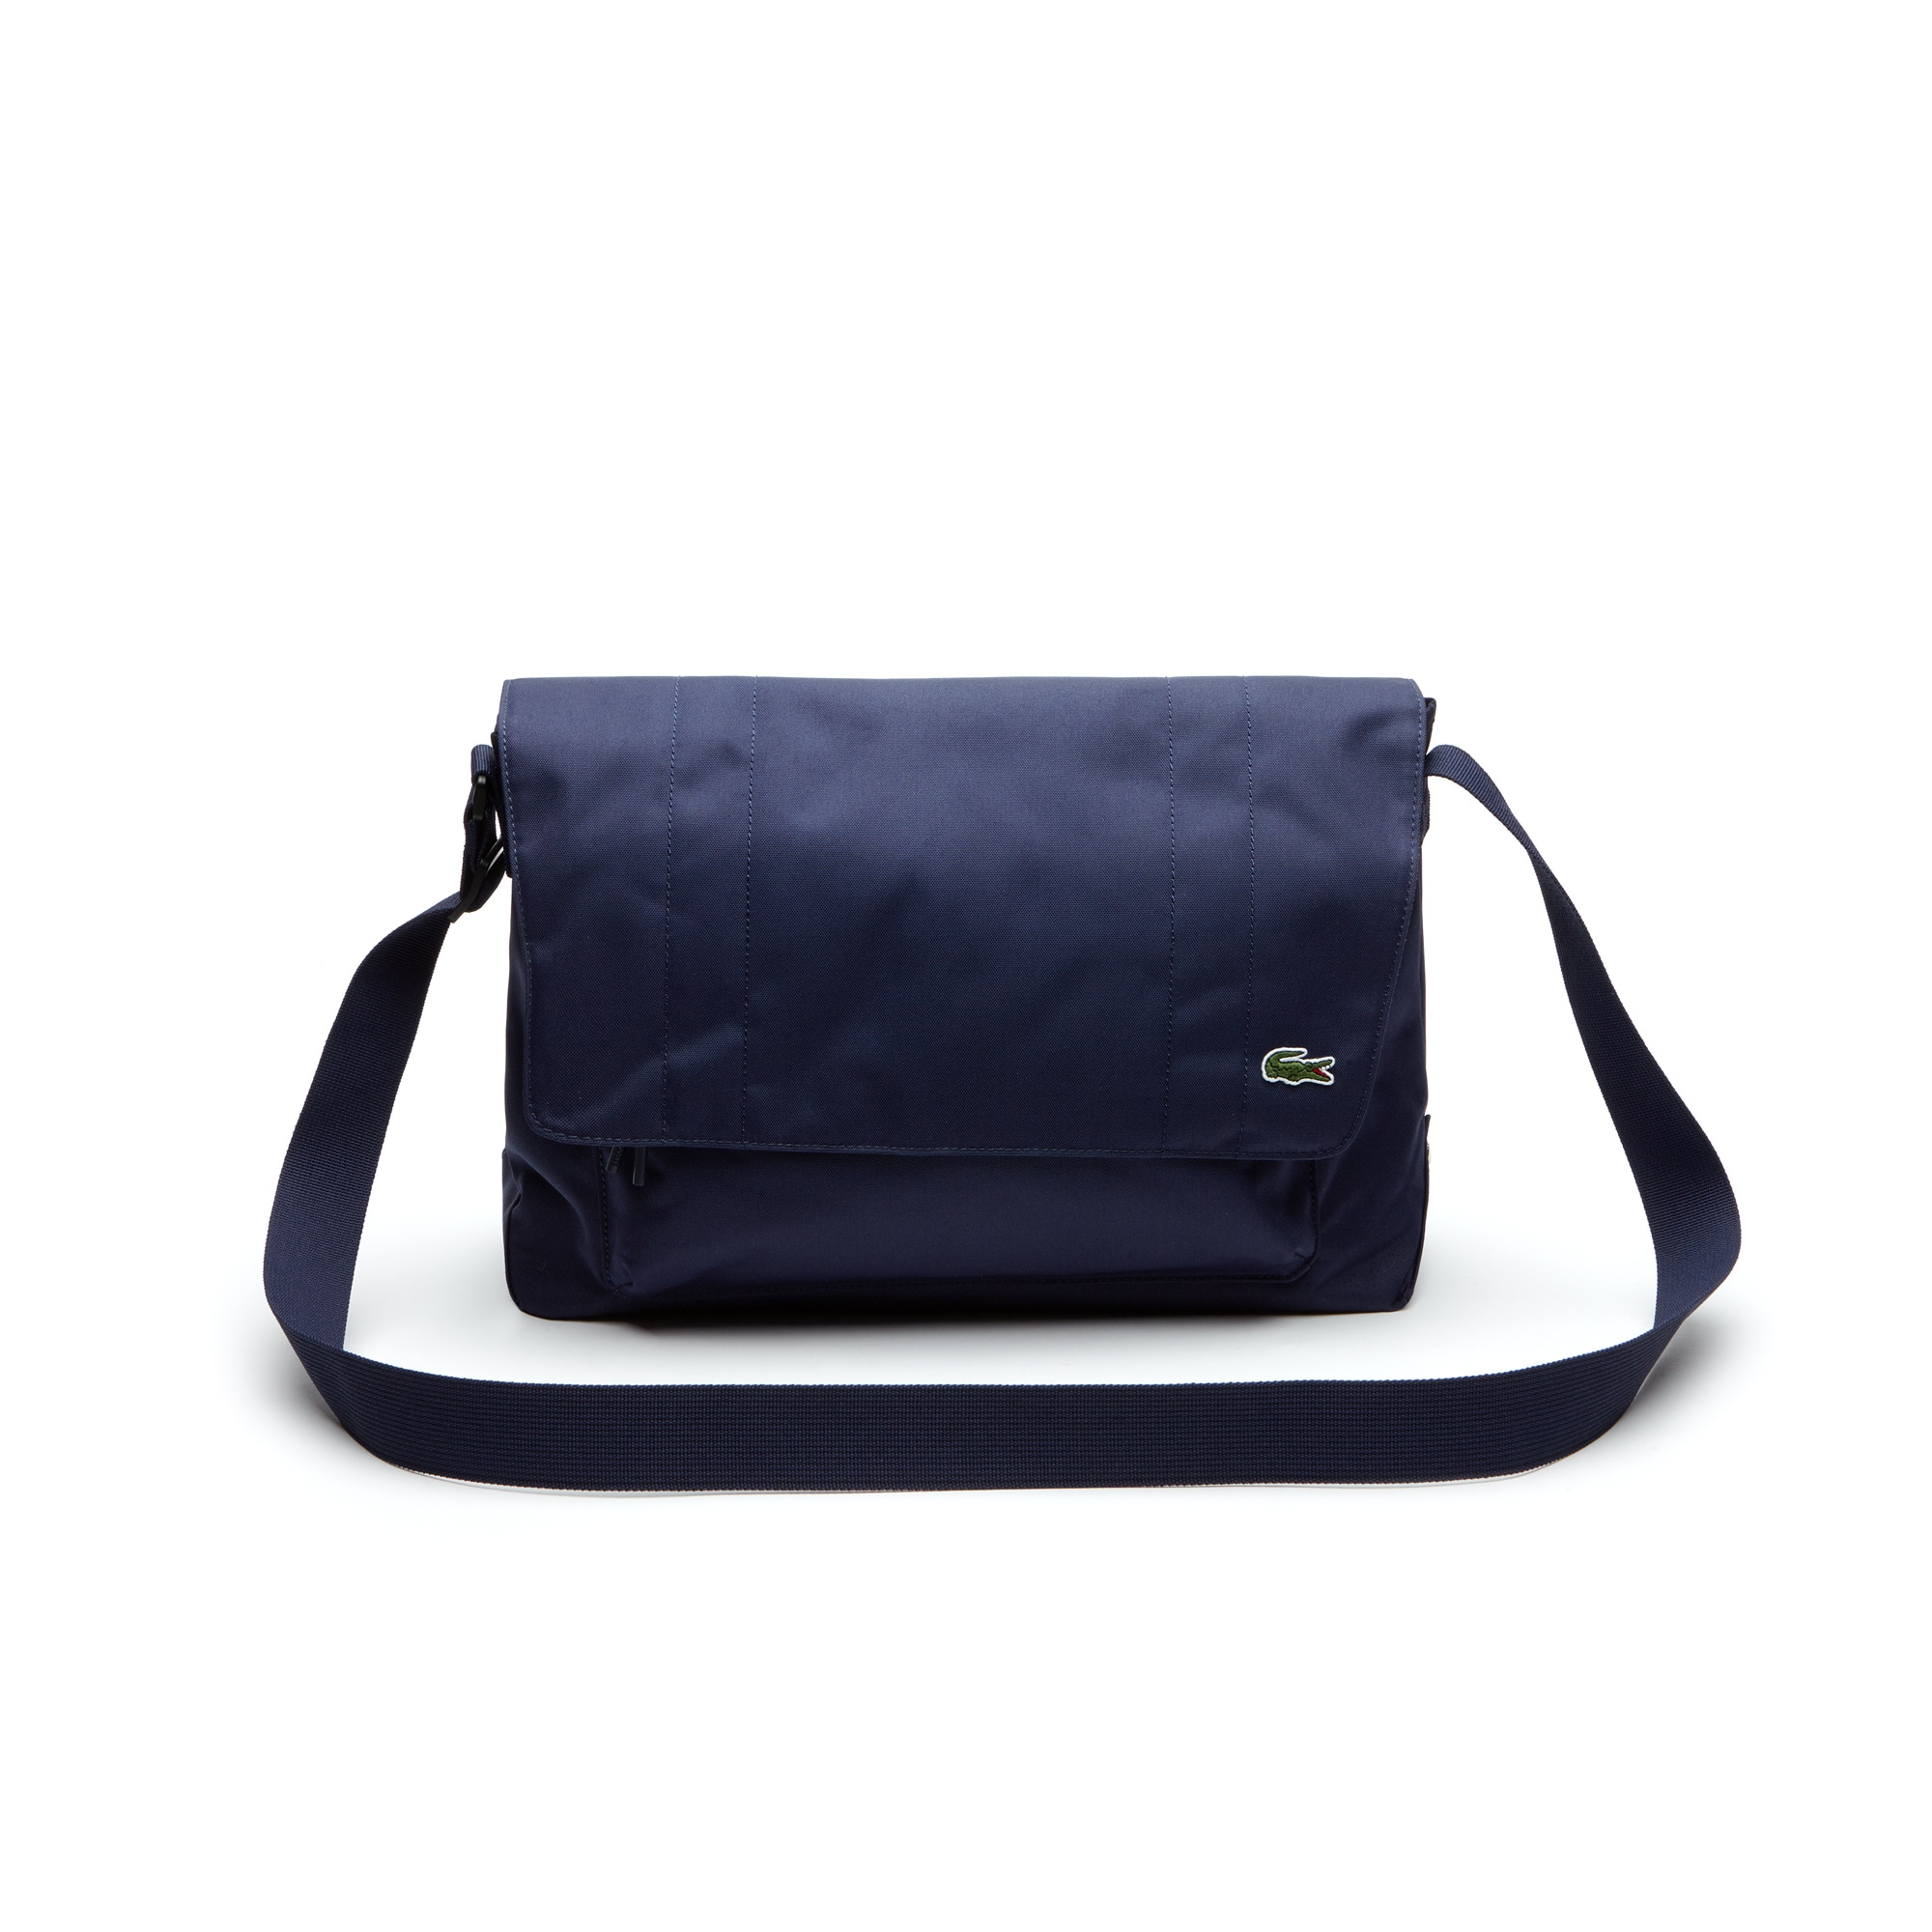 Neocroc All-Purpose Canvas Flap Bag